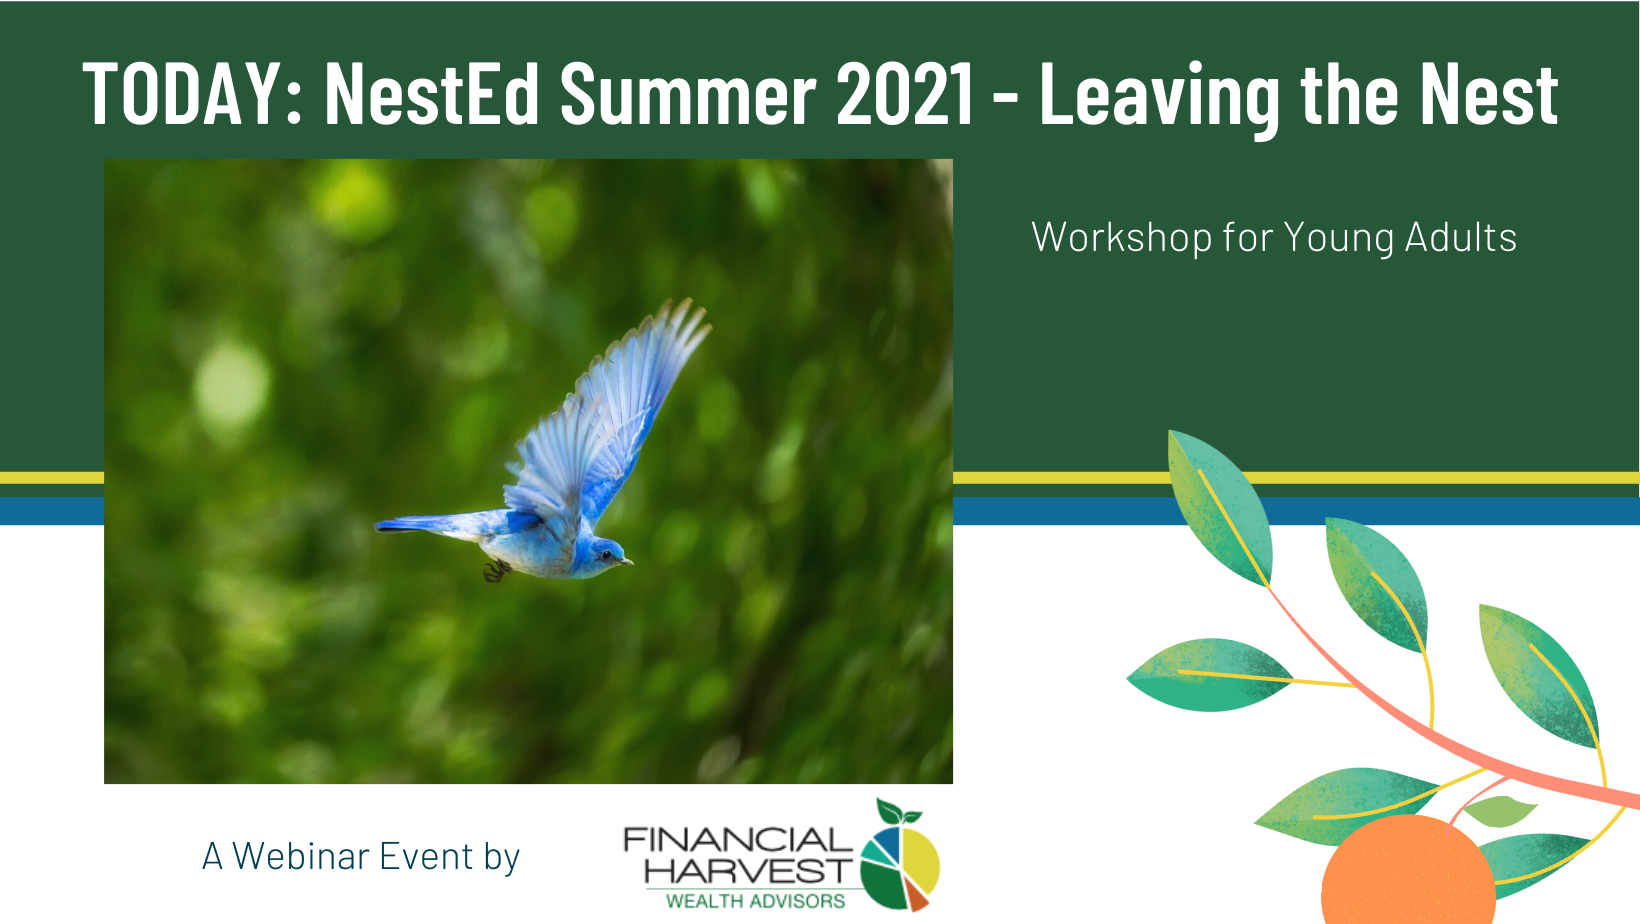 Today: nested summer 2021 - leaving the nest